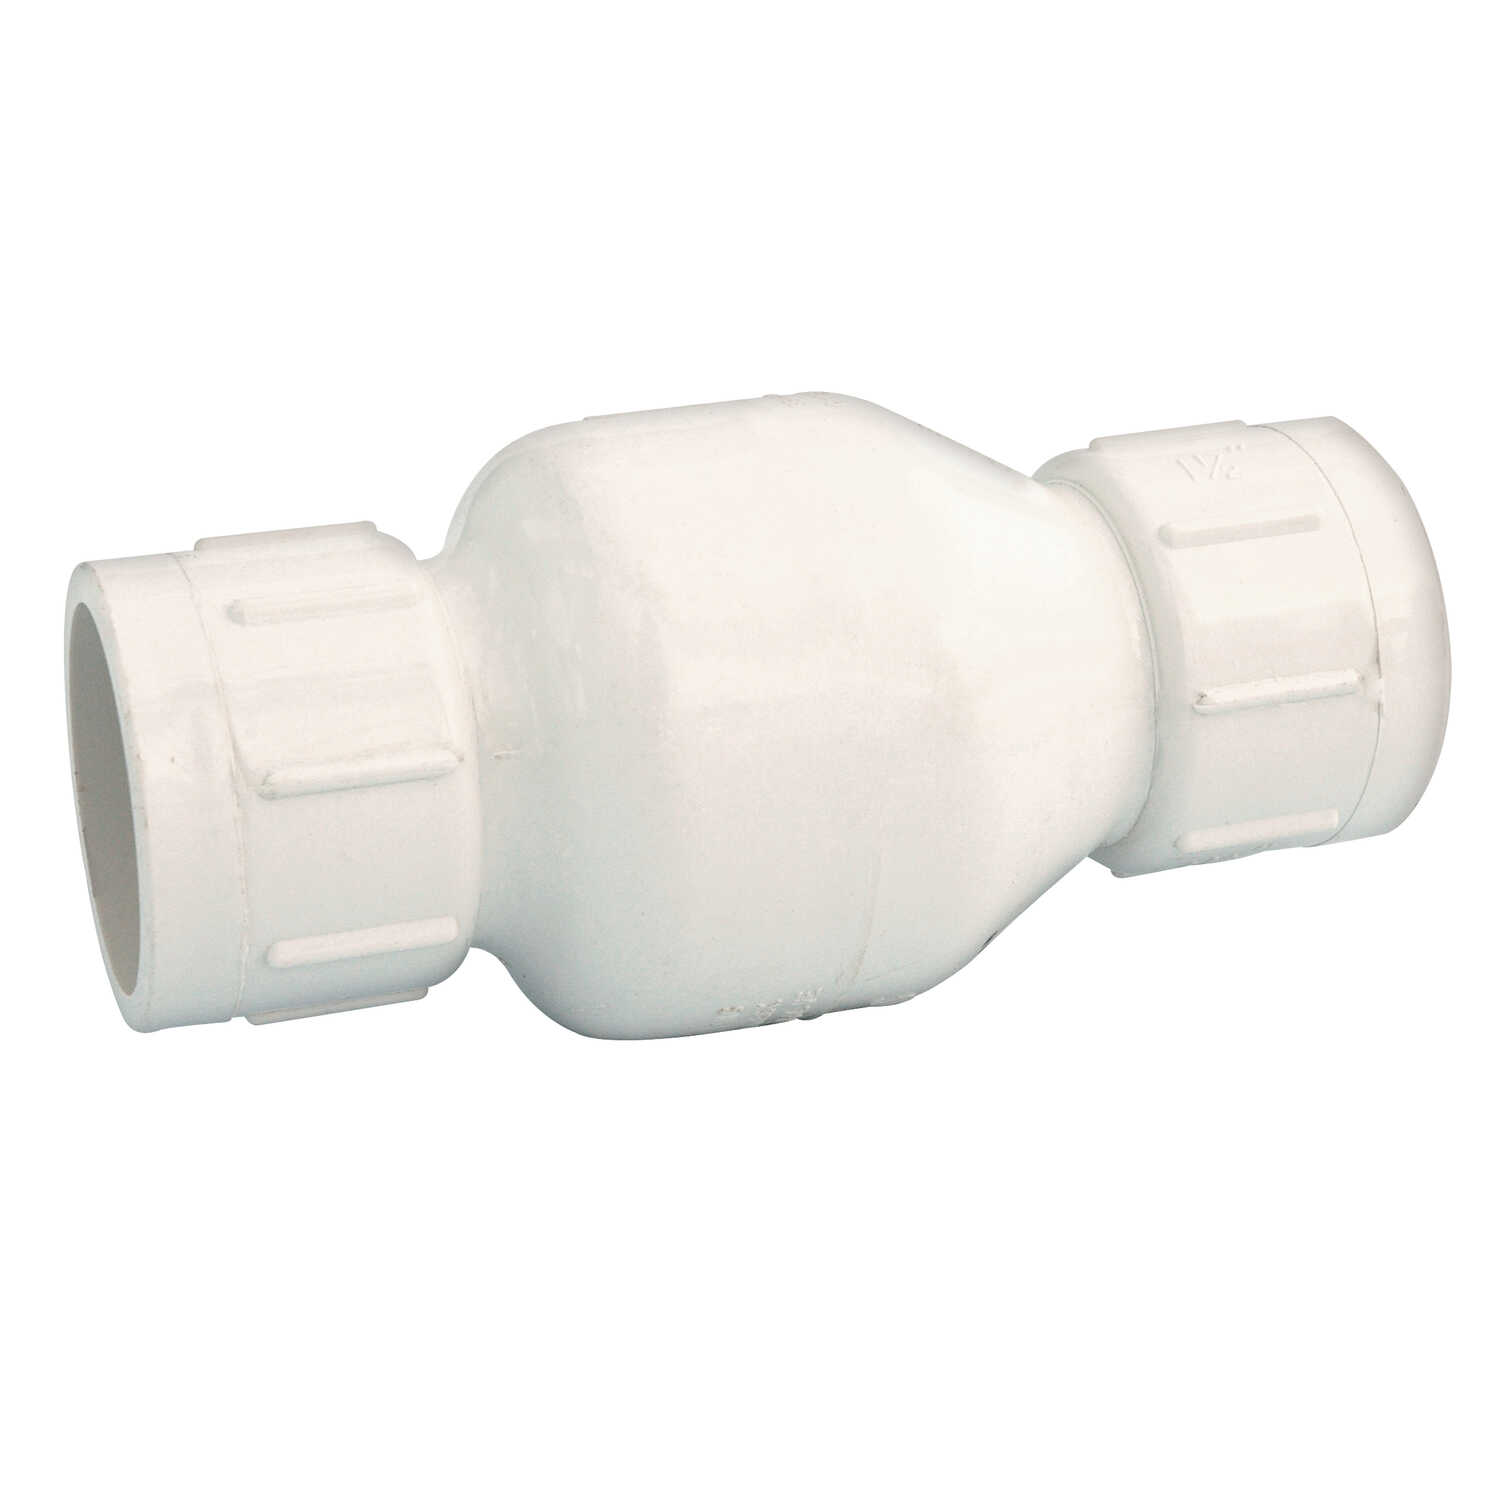 NDS  1 1/4 inches  Dia. x 1 1/4 inches  Dia. PVC  Spring Loaded  Check Valve